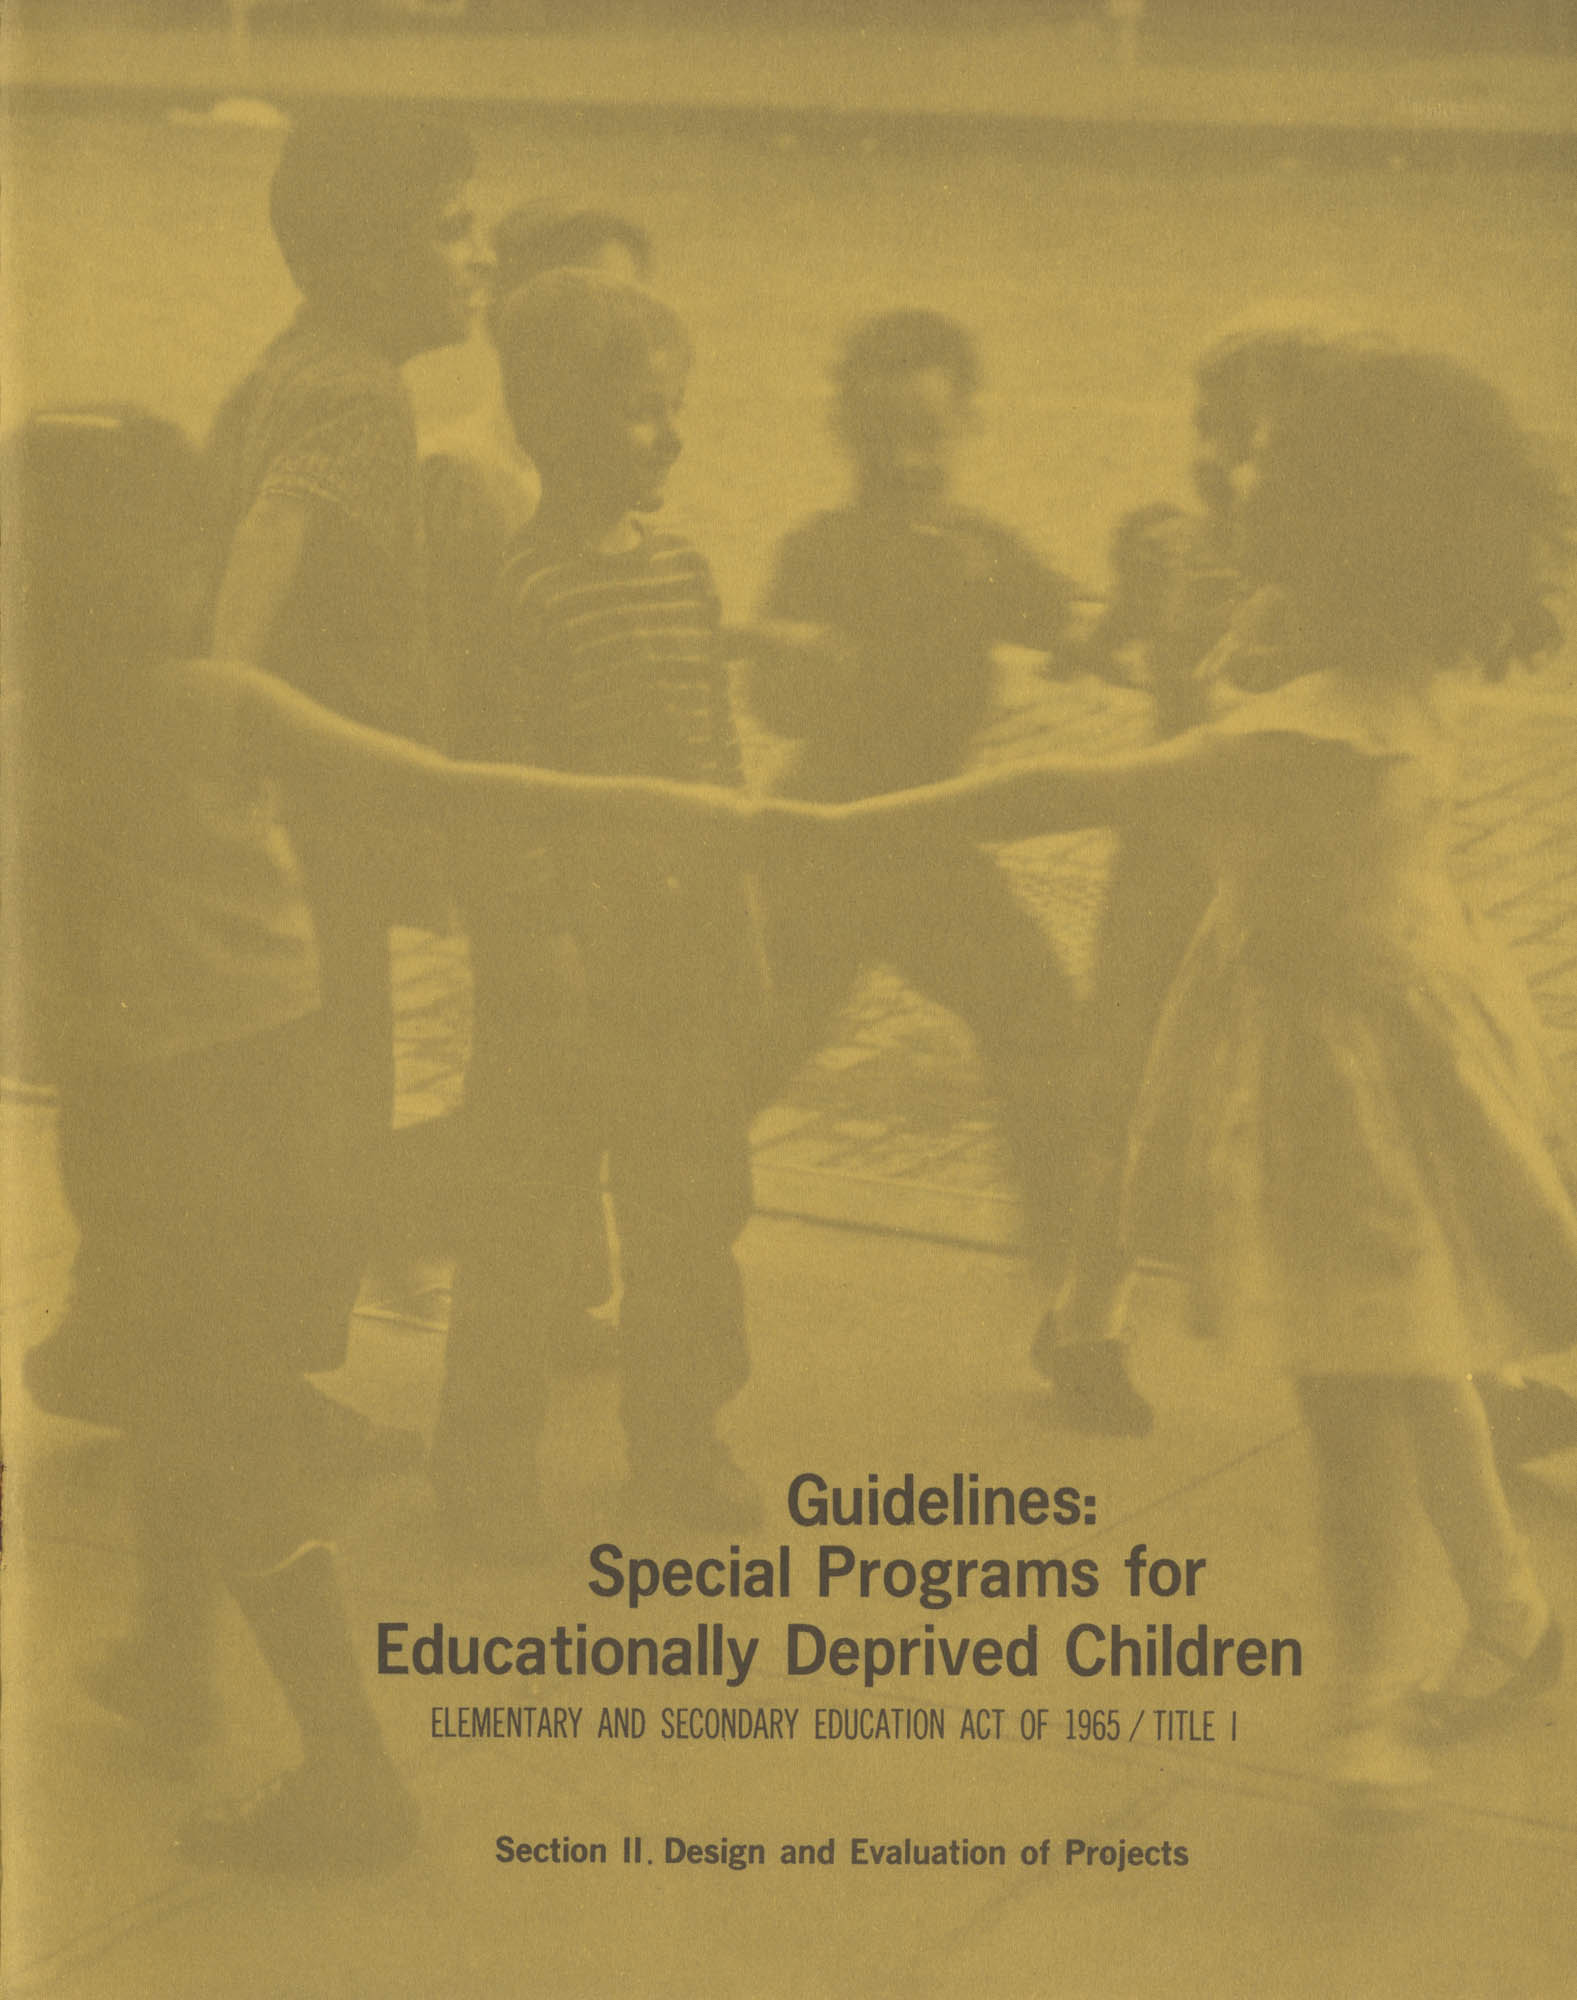 Guidelines: Special Programs for Educationally Deprived Children, Section II, Front Cover Exterior